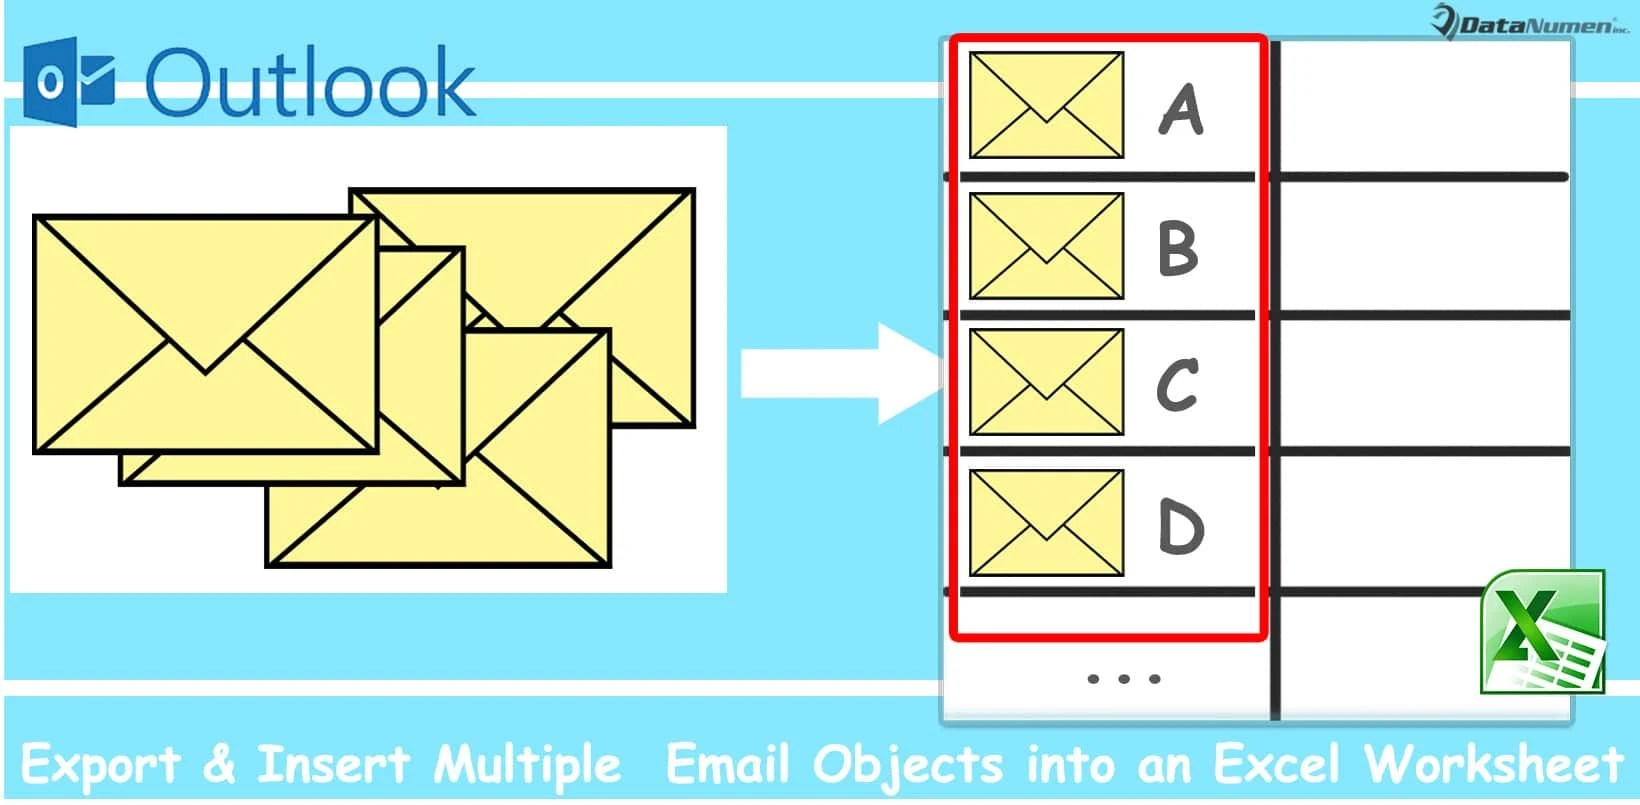 How To Batch Export Amp Insert Multiple Outlook Email Objects Into An Excel Worksheet